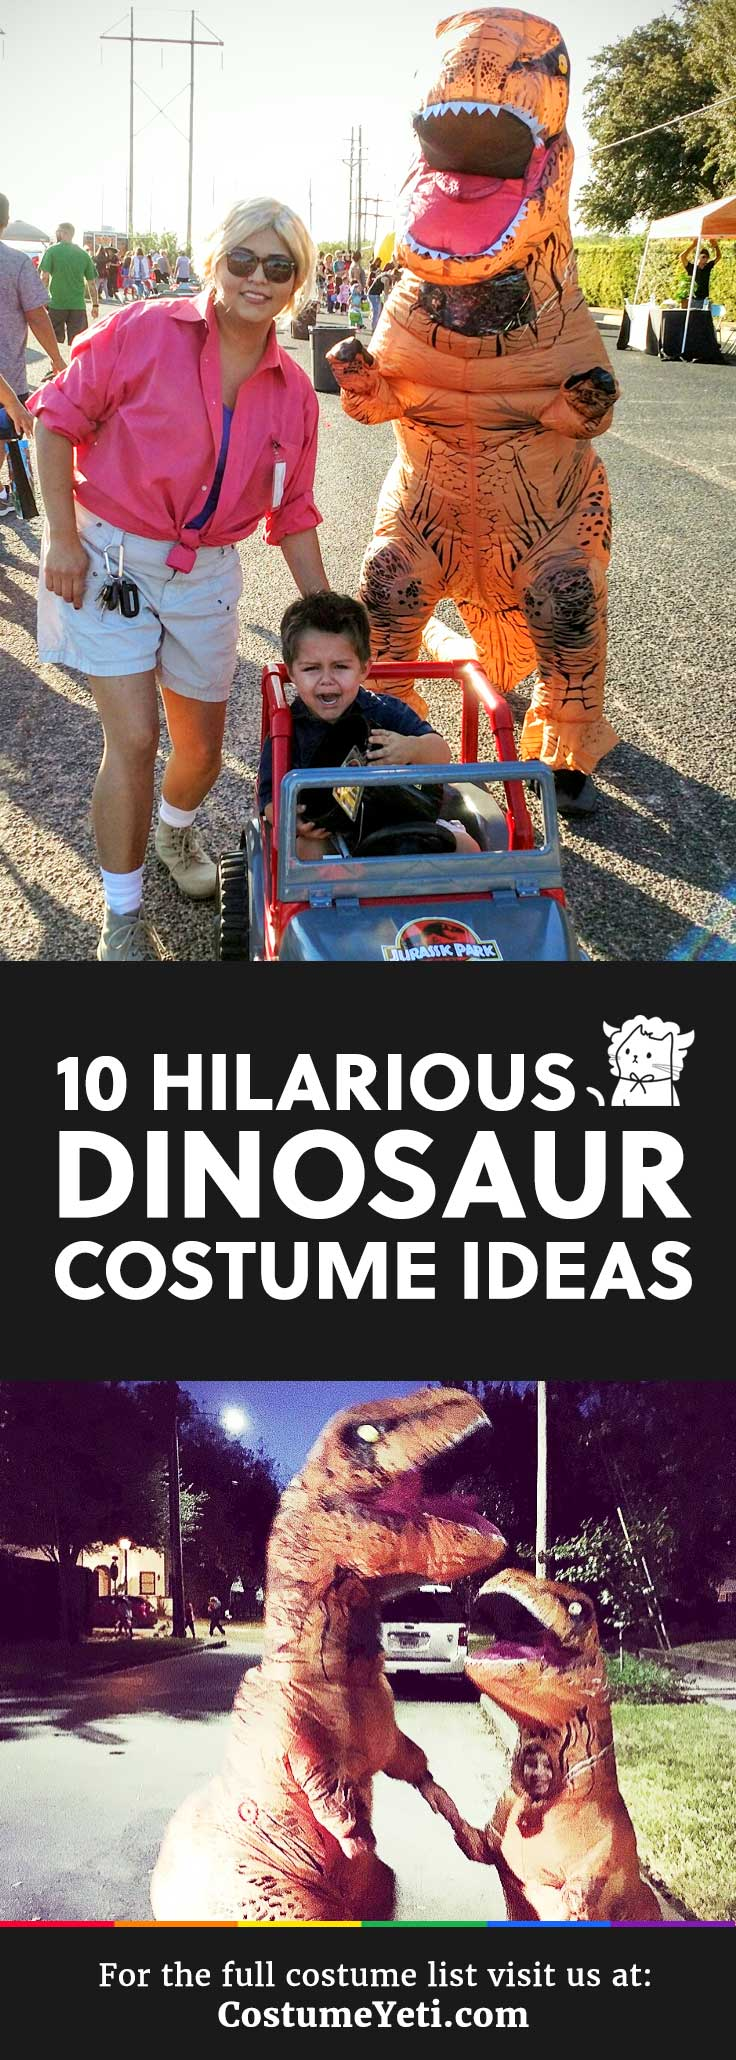 I love this inflatable t rex and these other unique dinosaur costume ideas! SO cool.